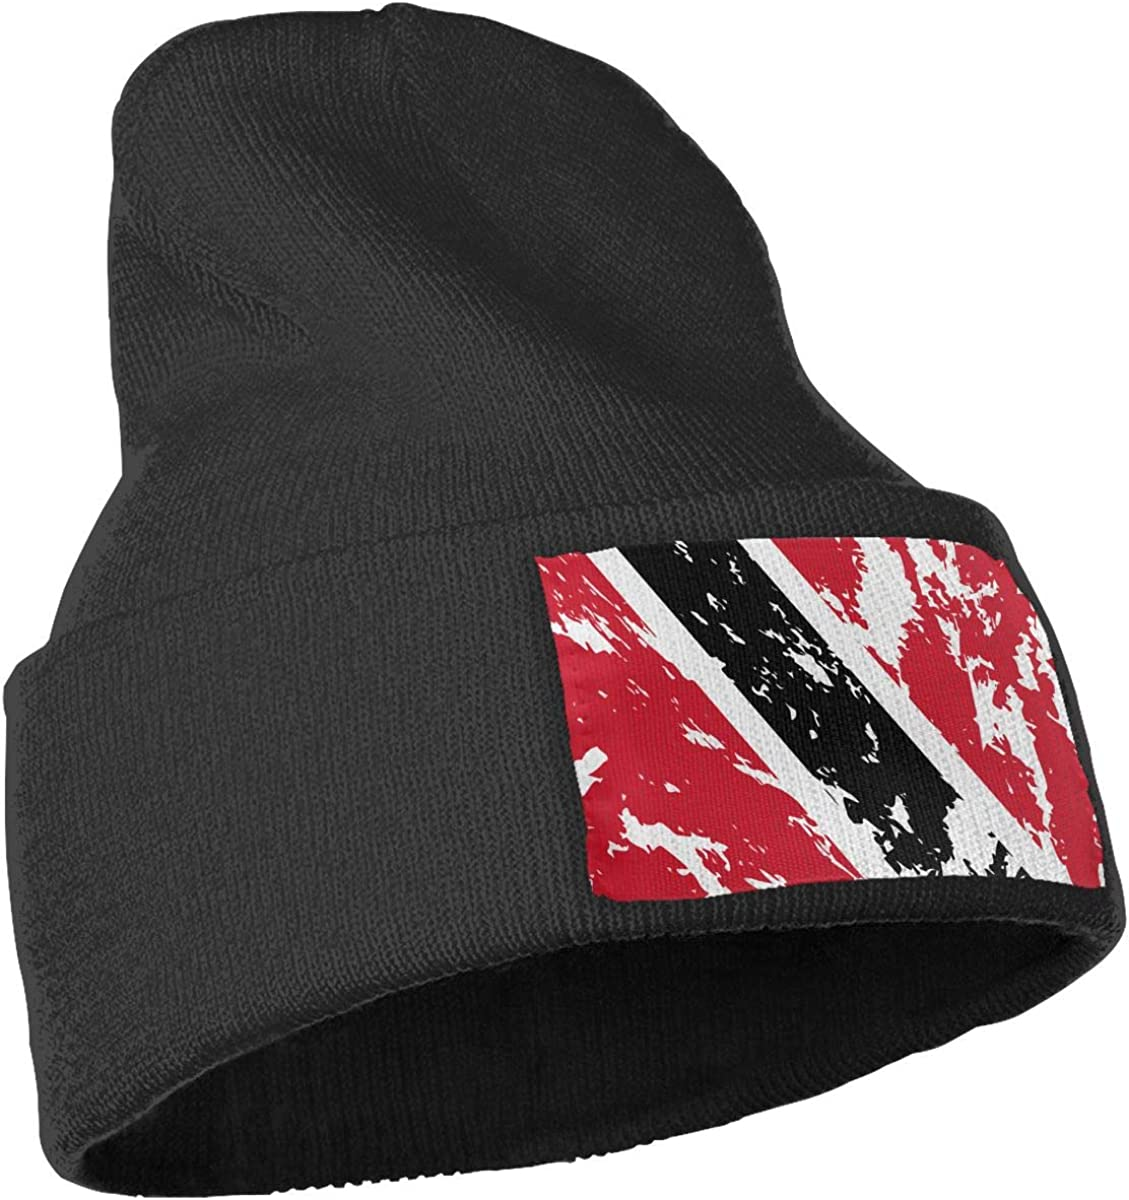 Lake-OD Men/&Women USA Guam Flag Winter Beanie Hat Cuffed Plain Skull Knit Hat Cap